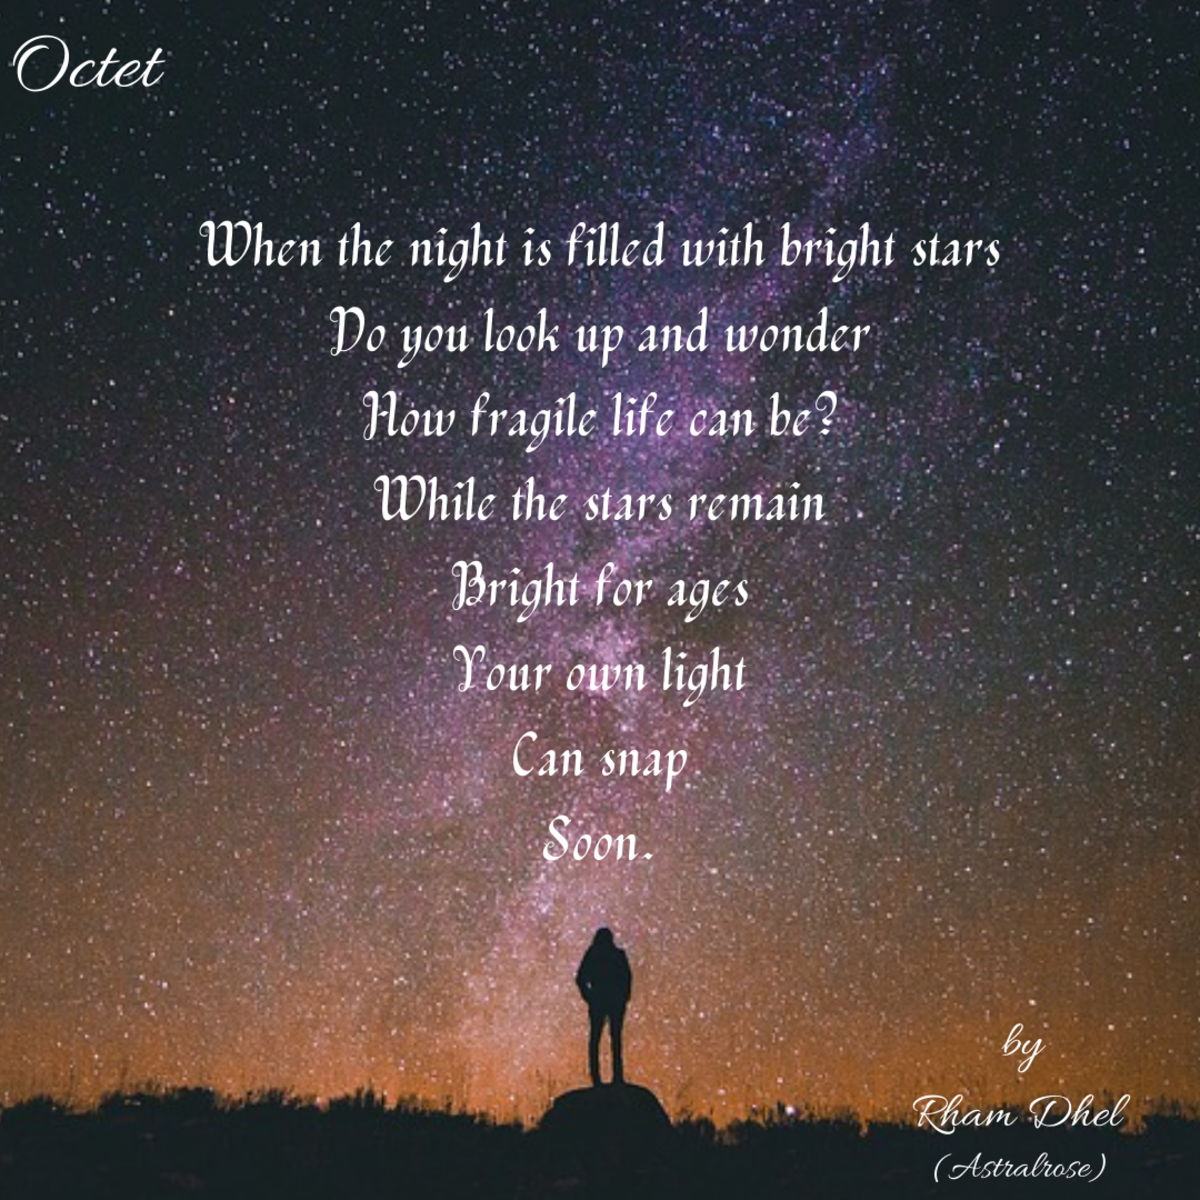 ~another example of a poem in octet form~